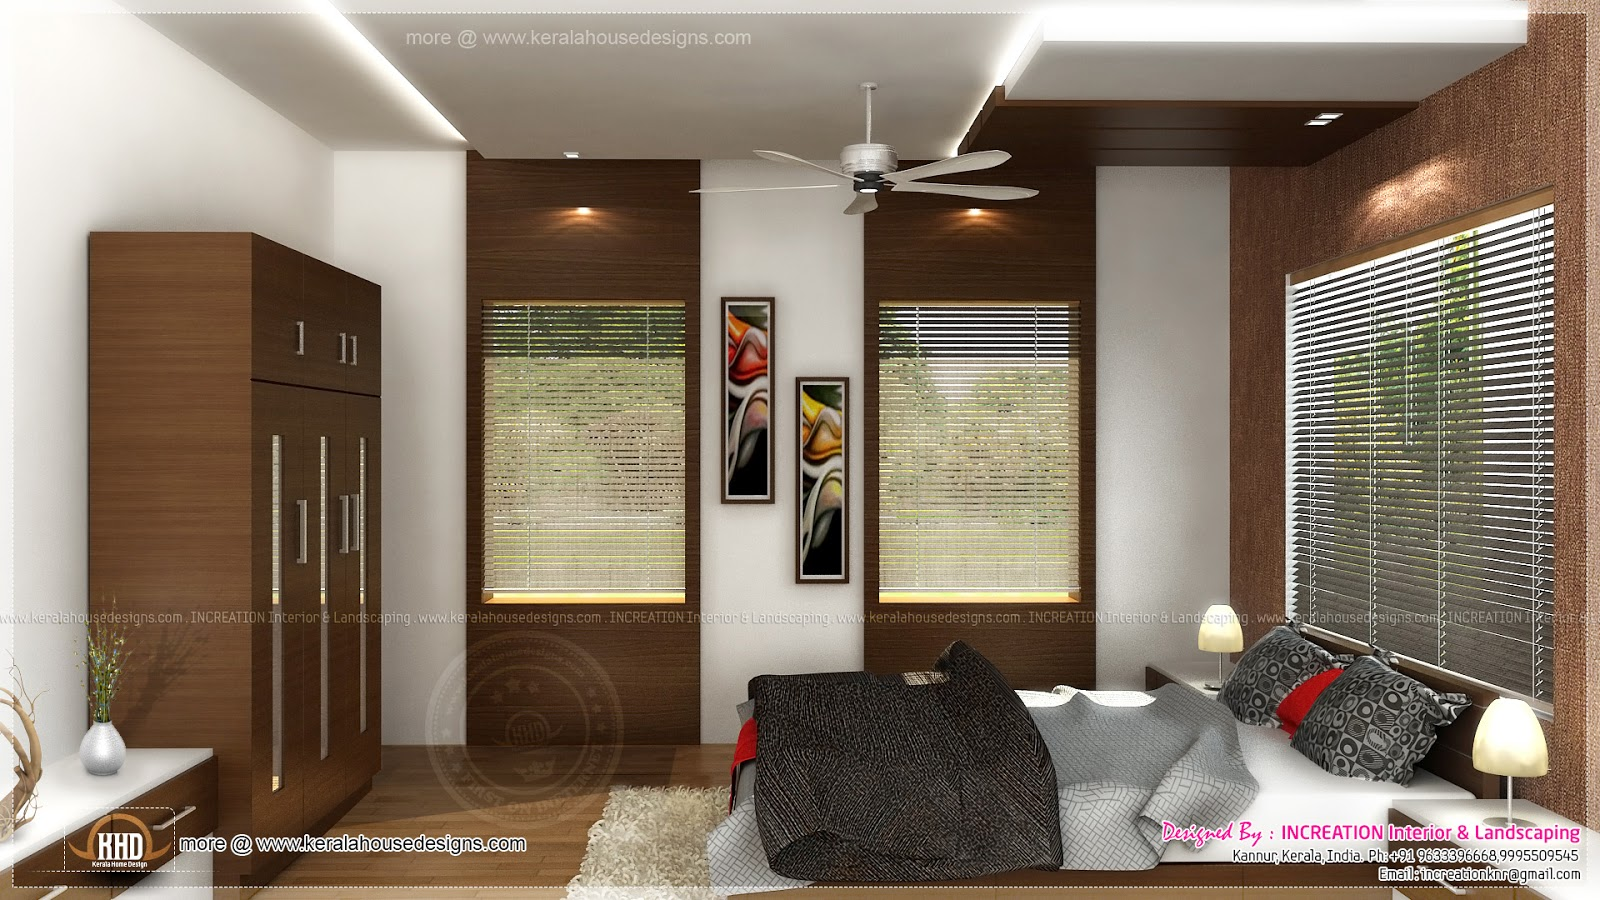 Interior designs from kannur kerala home kerala plans for House designs interior